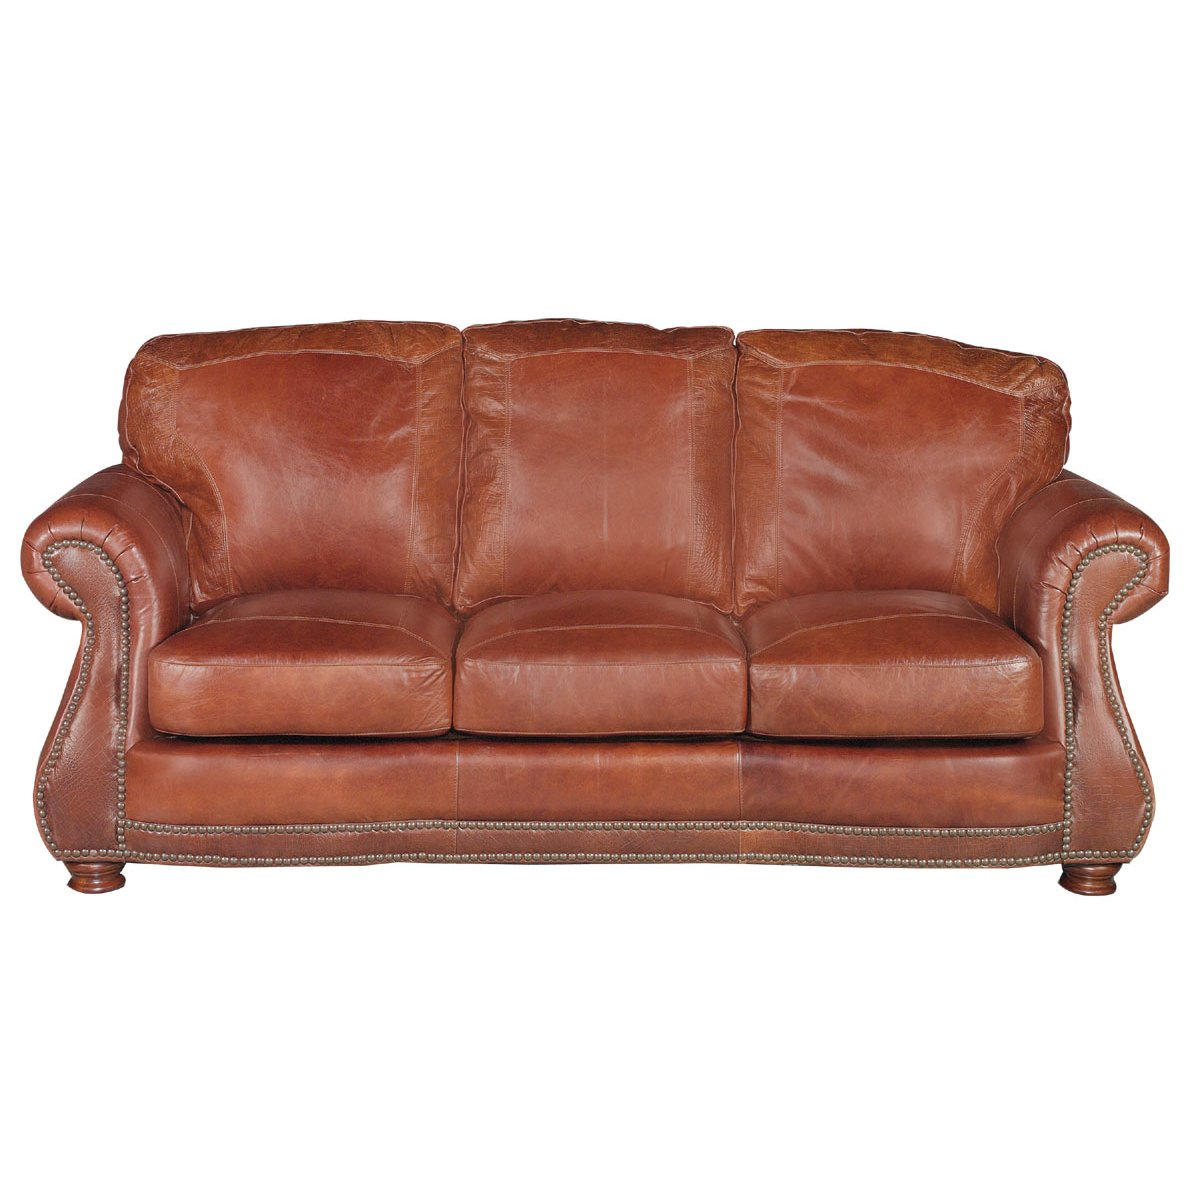 Traditional Brandy Brown Leather Sofa